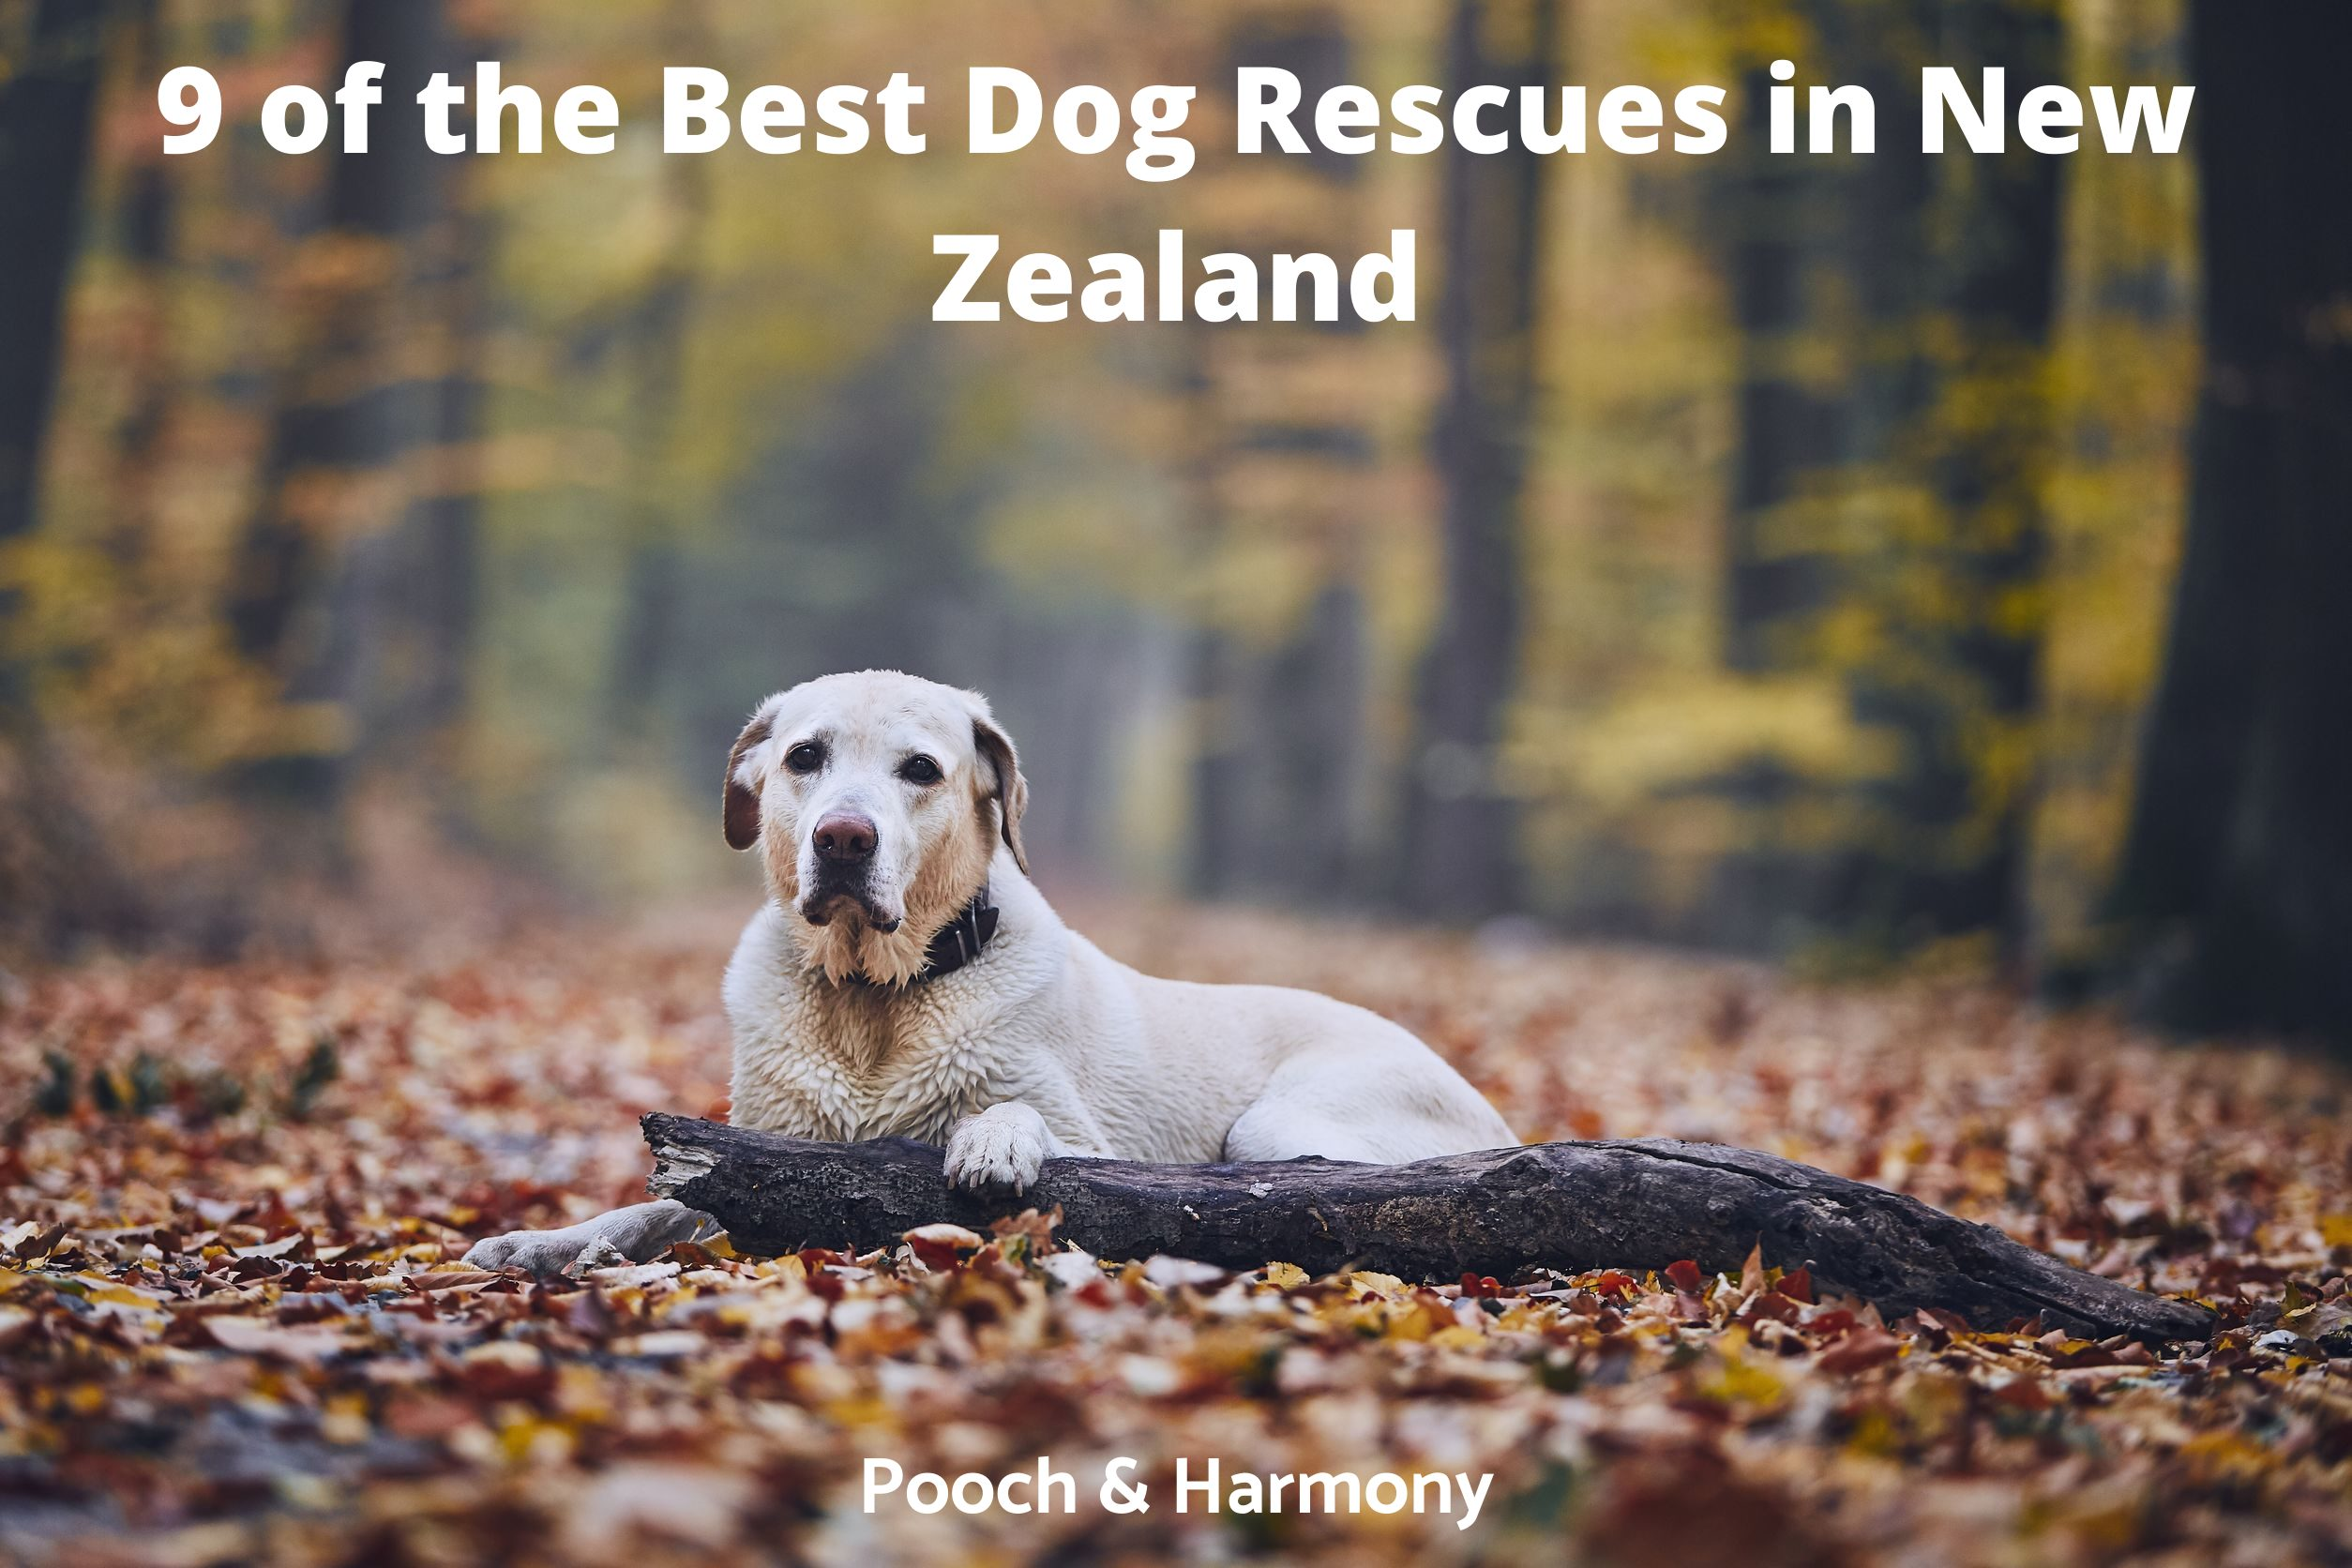 Best Dog Rescues in New Zealand